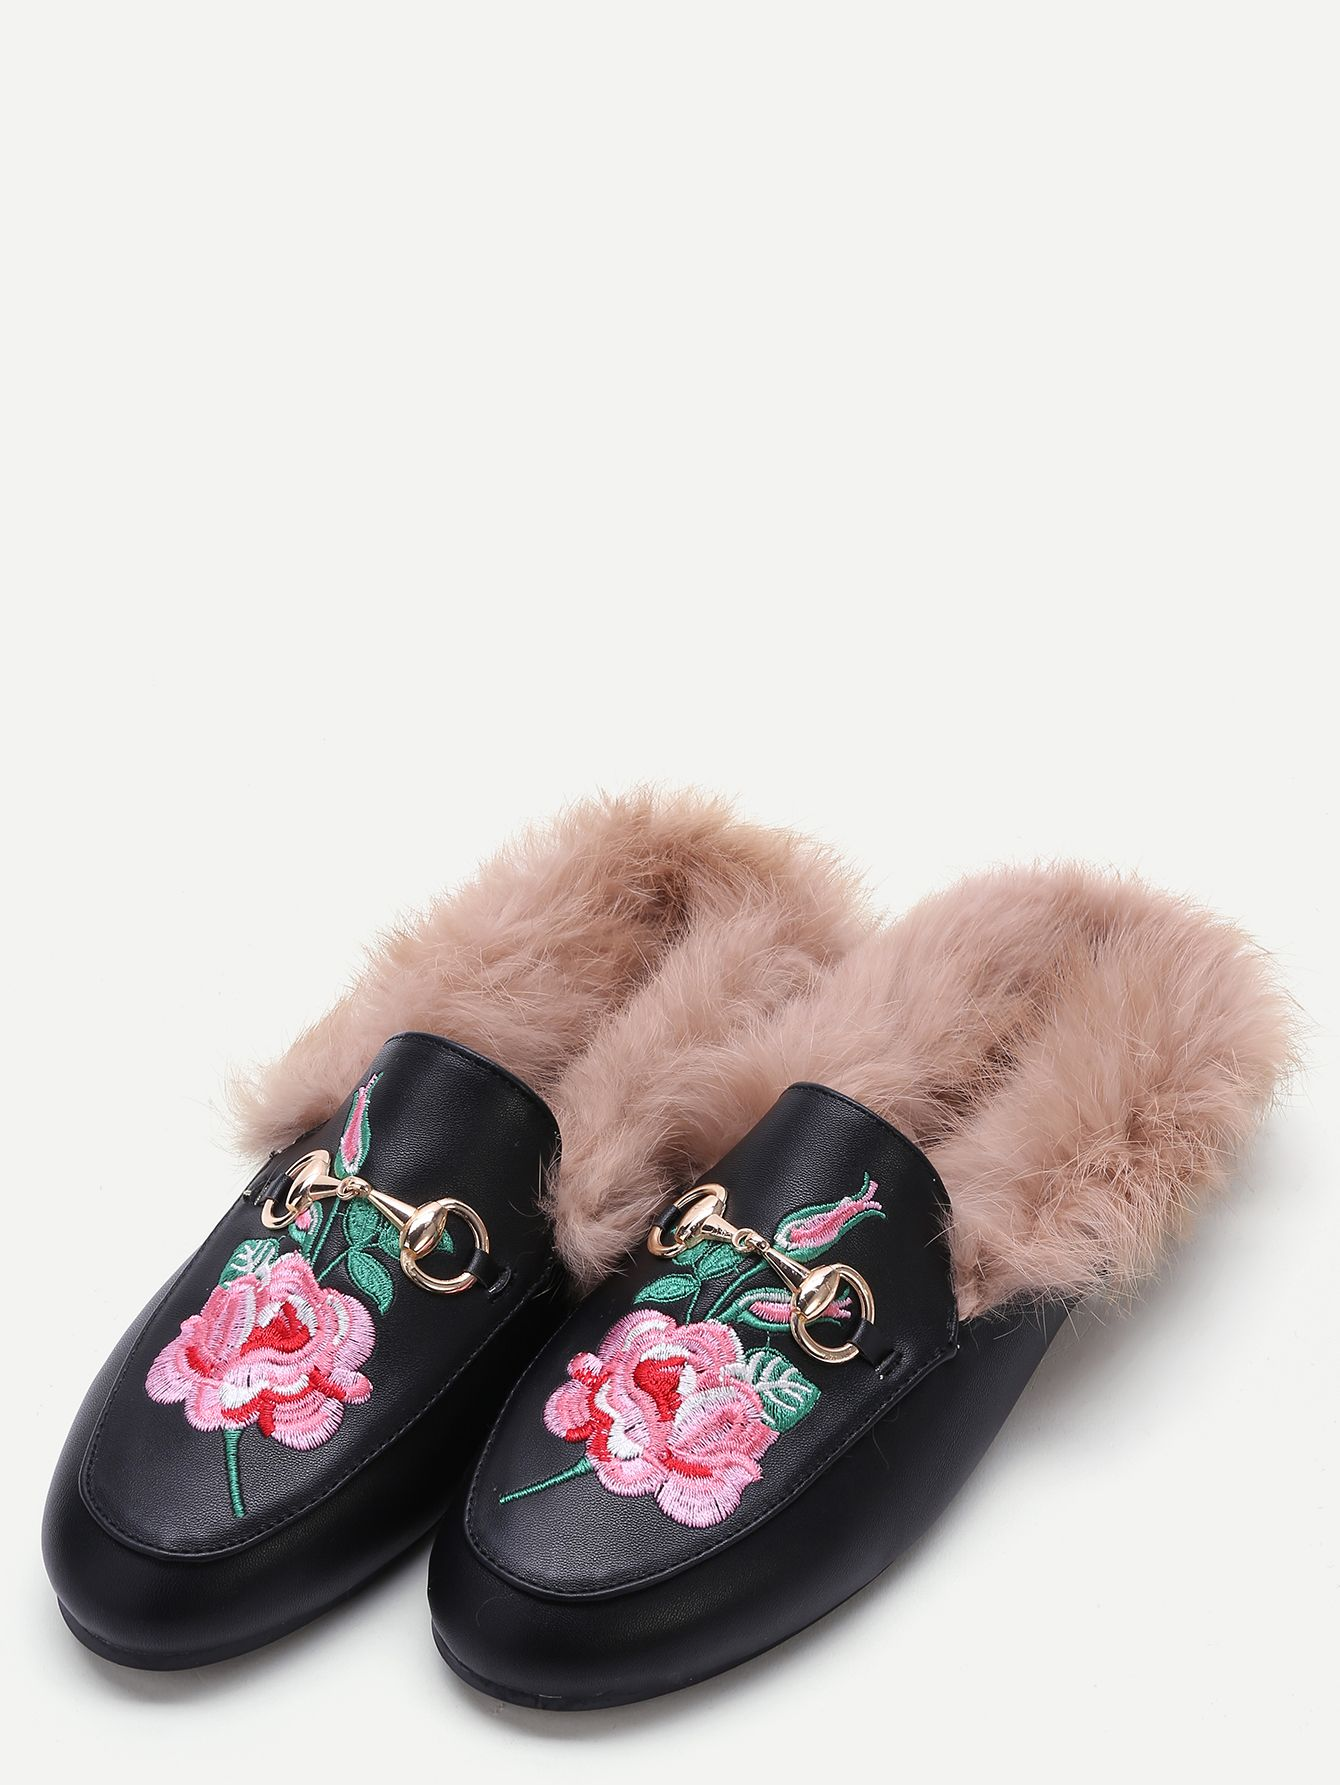 79eb68f1ce17 Floral Embroidered Loafers for only  36! Floral Fur Loafers